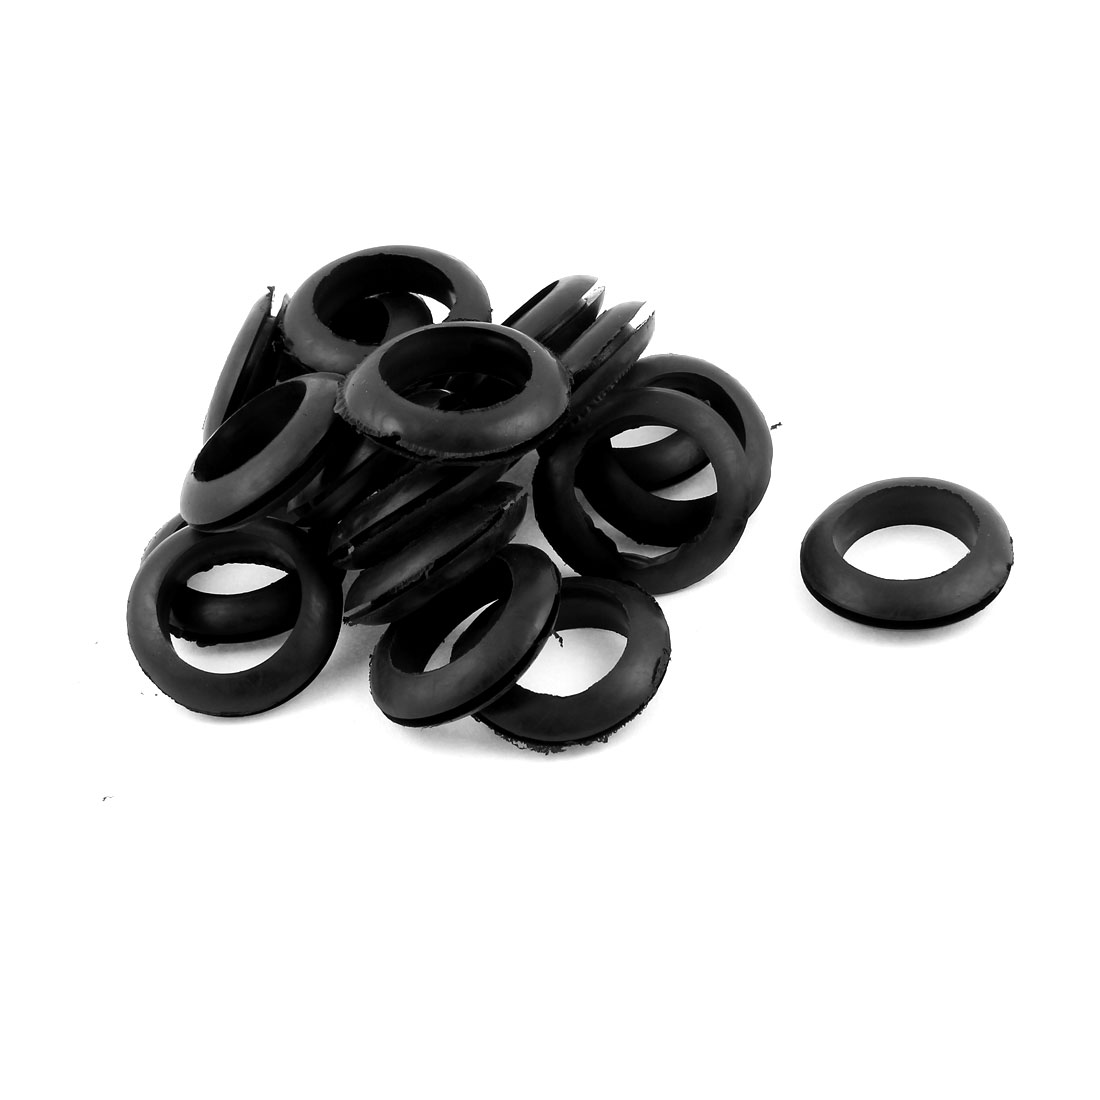 20 Pcs Black Rubber 30mm Open Hole Ring Dual Side Cable Wiring Grommet